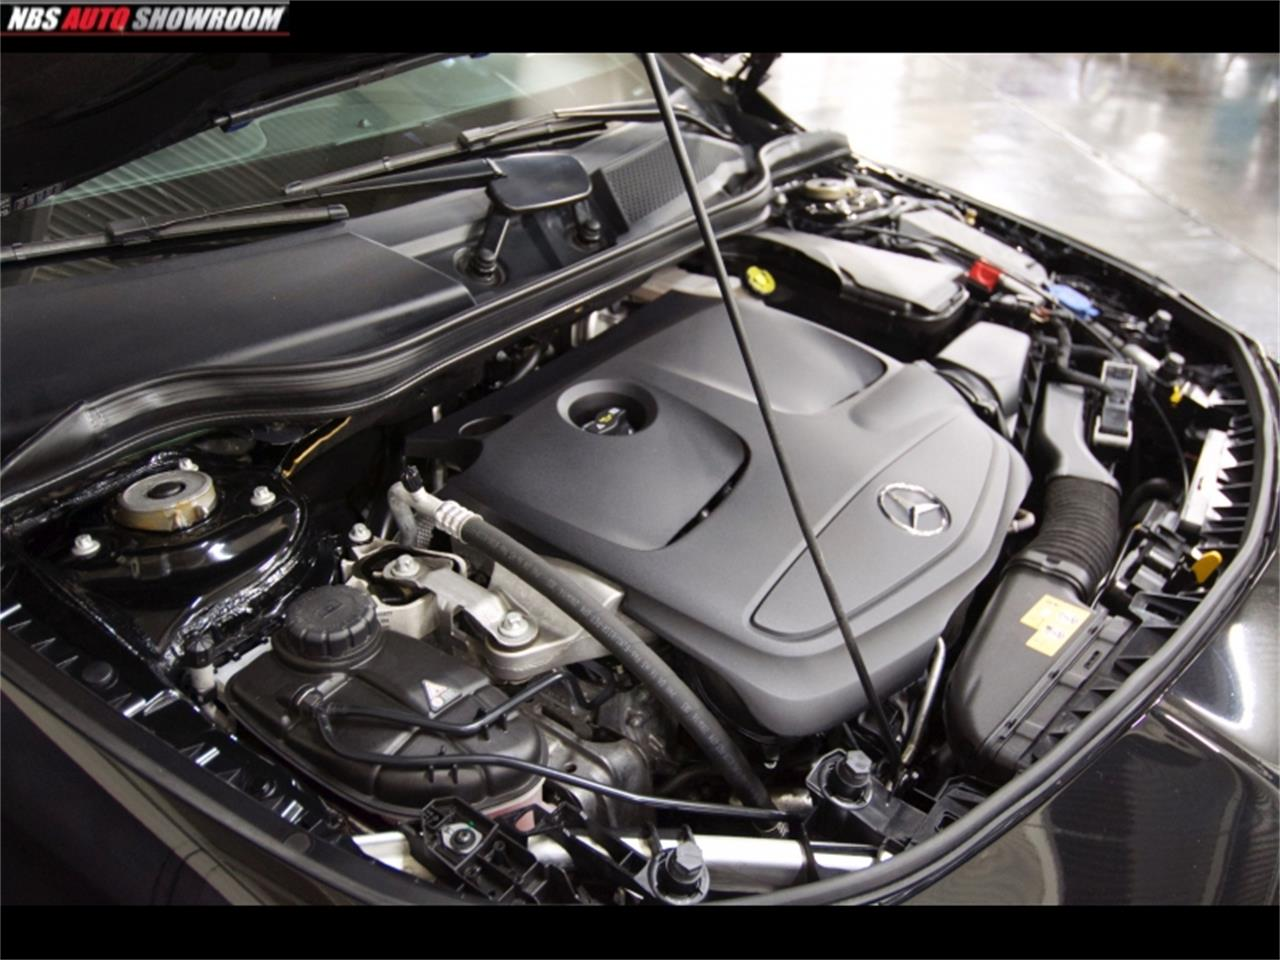 2017 Mercedes-Benz CLA (CC-1296050) for sale in Milpitas, California